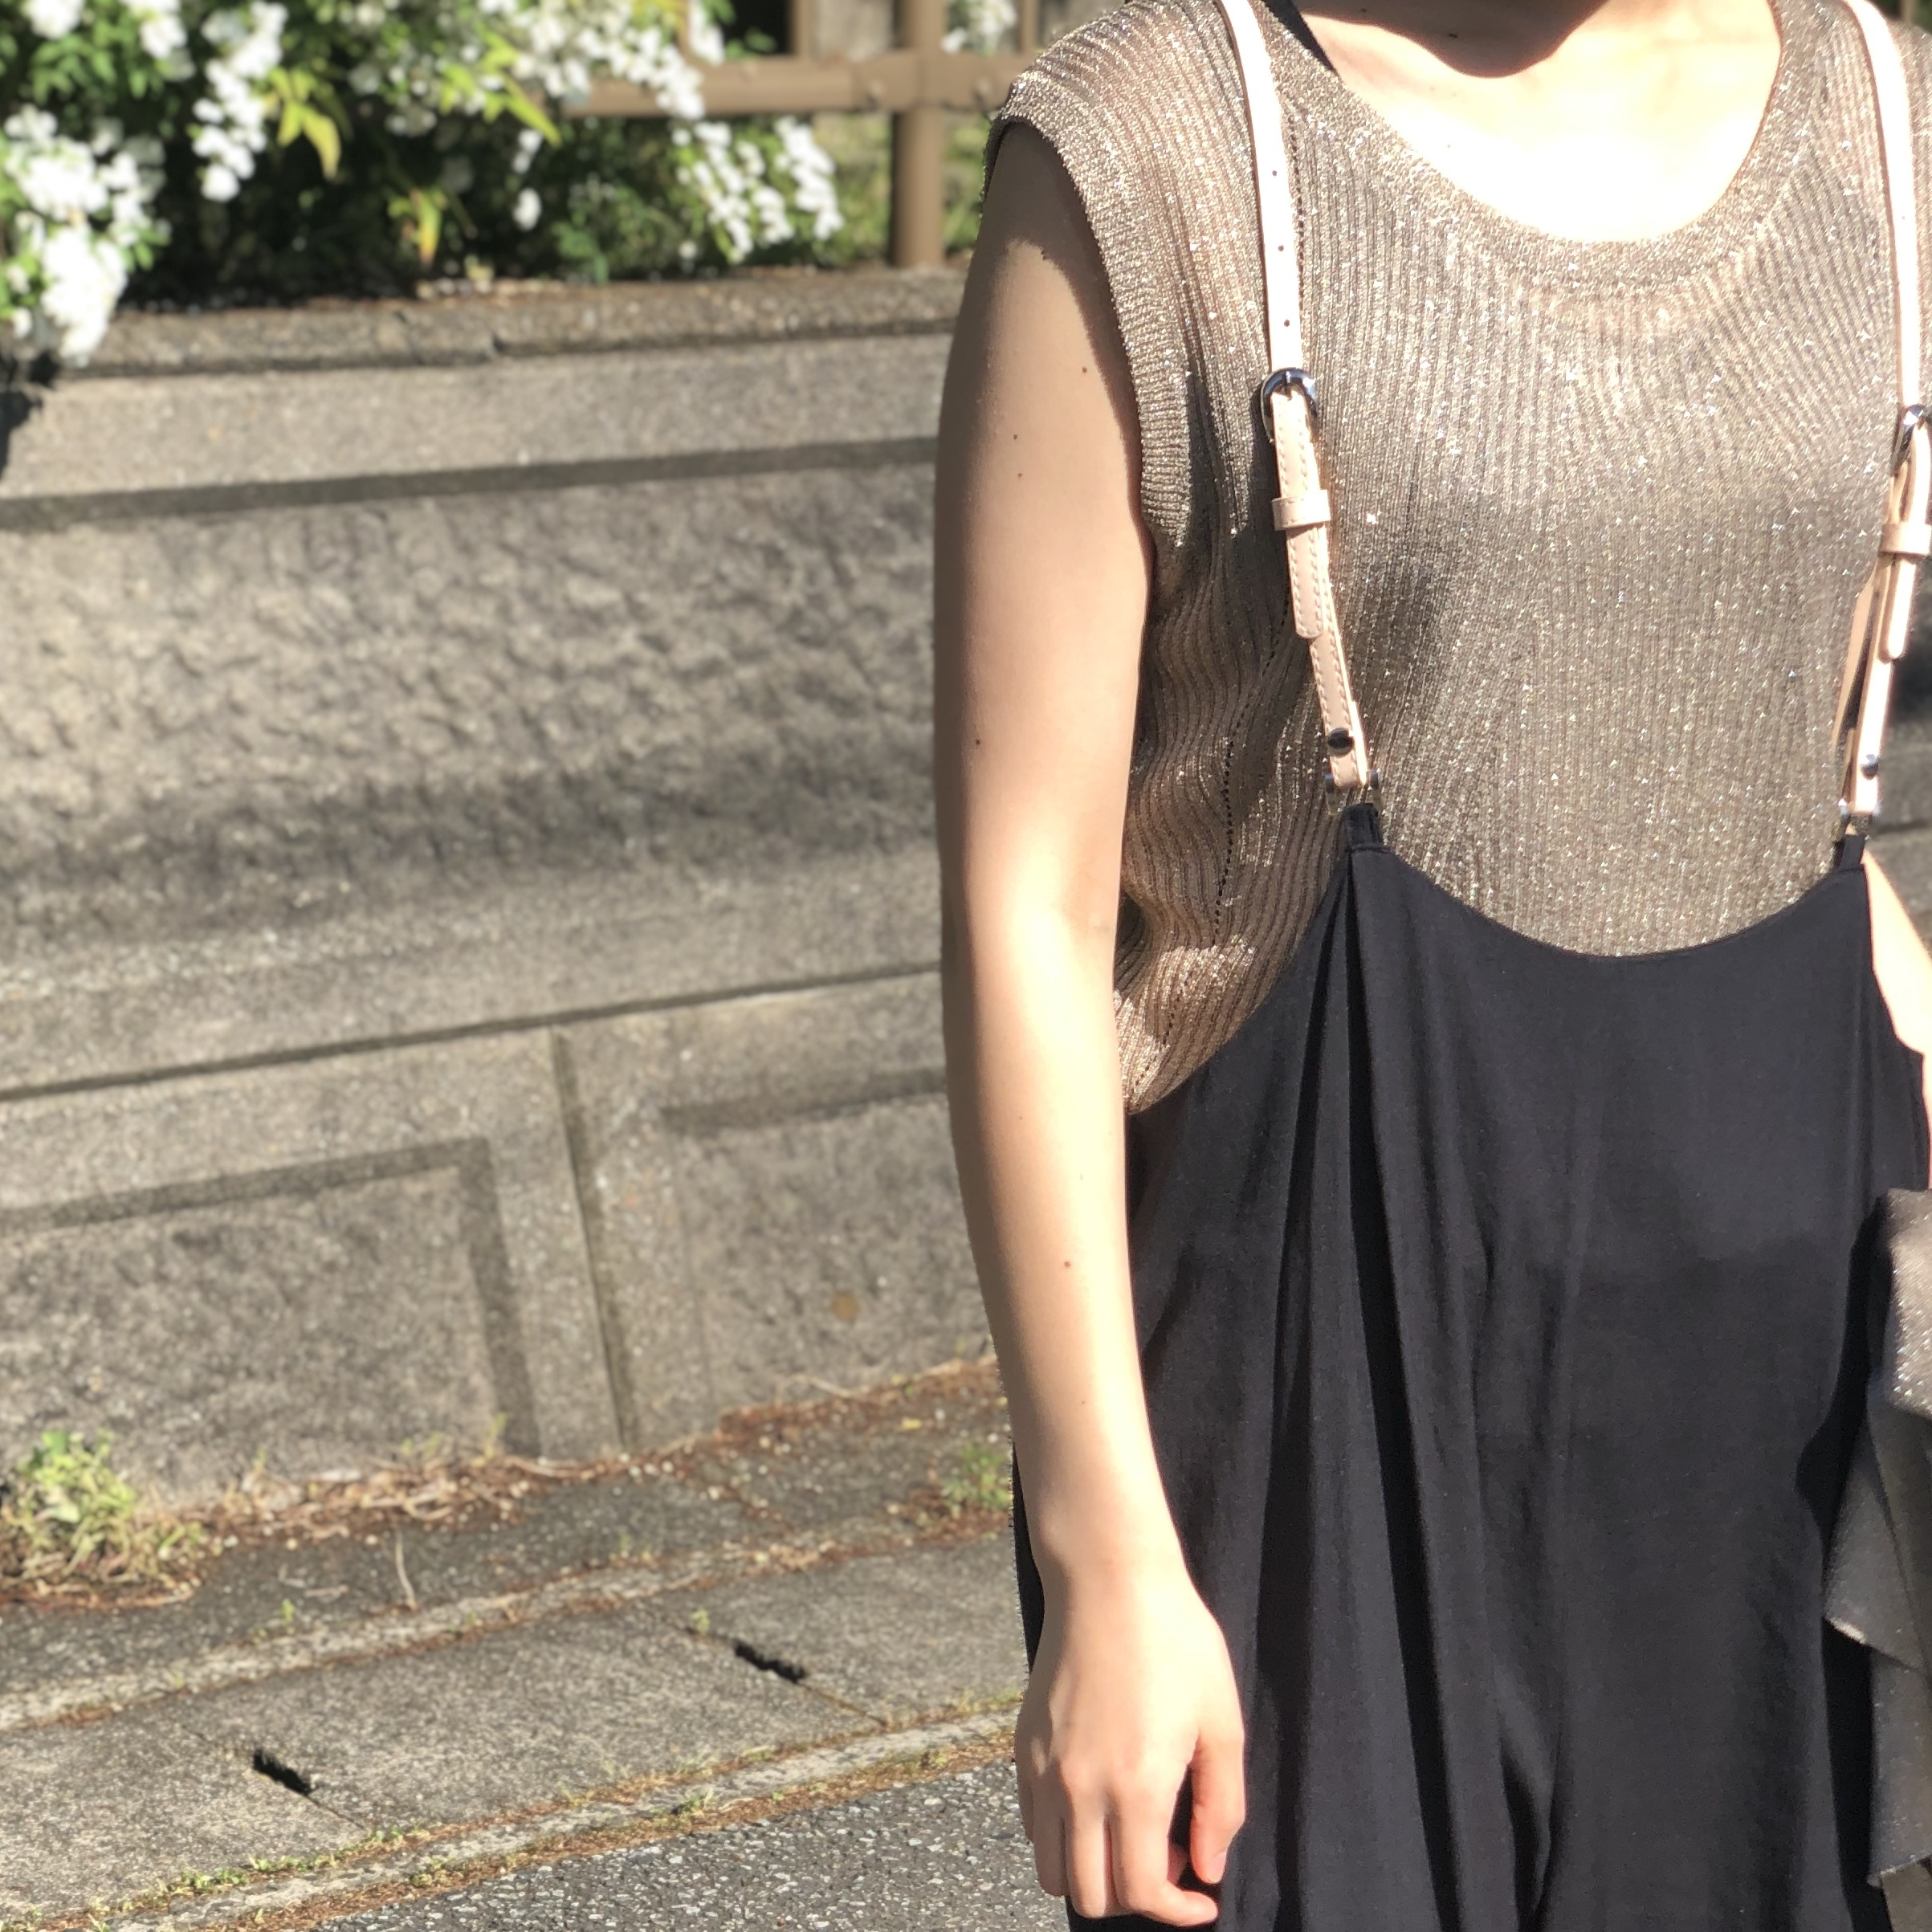 【 CHIGNONSTAR 】- 9101-306 - 2wayラメニットTOPS